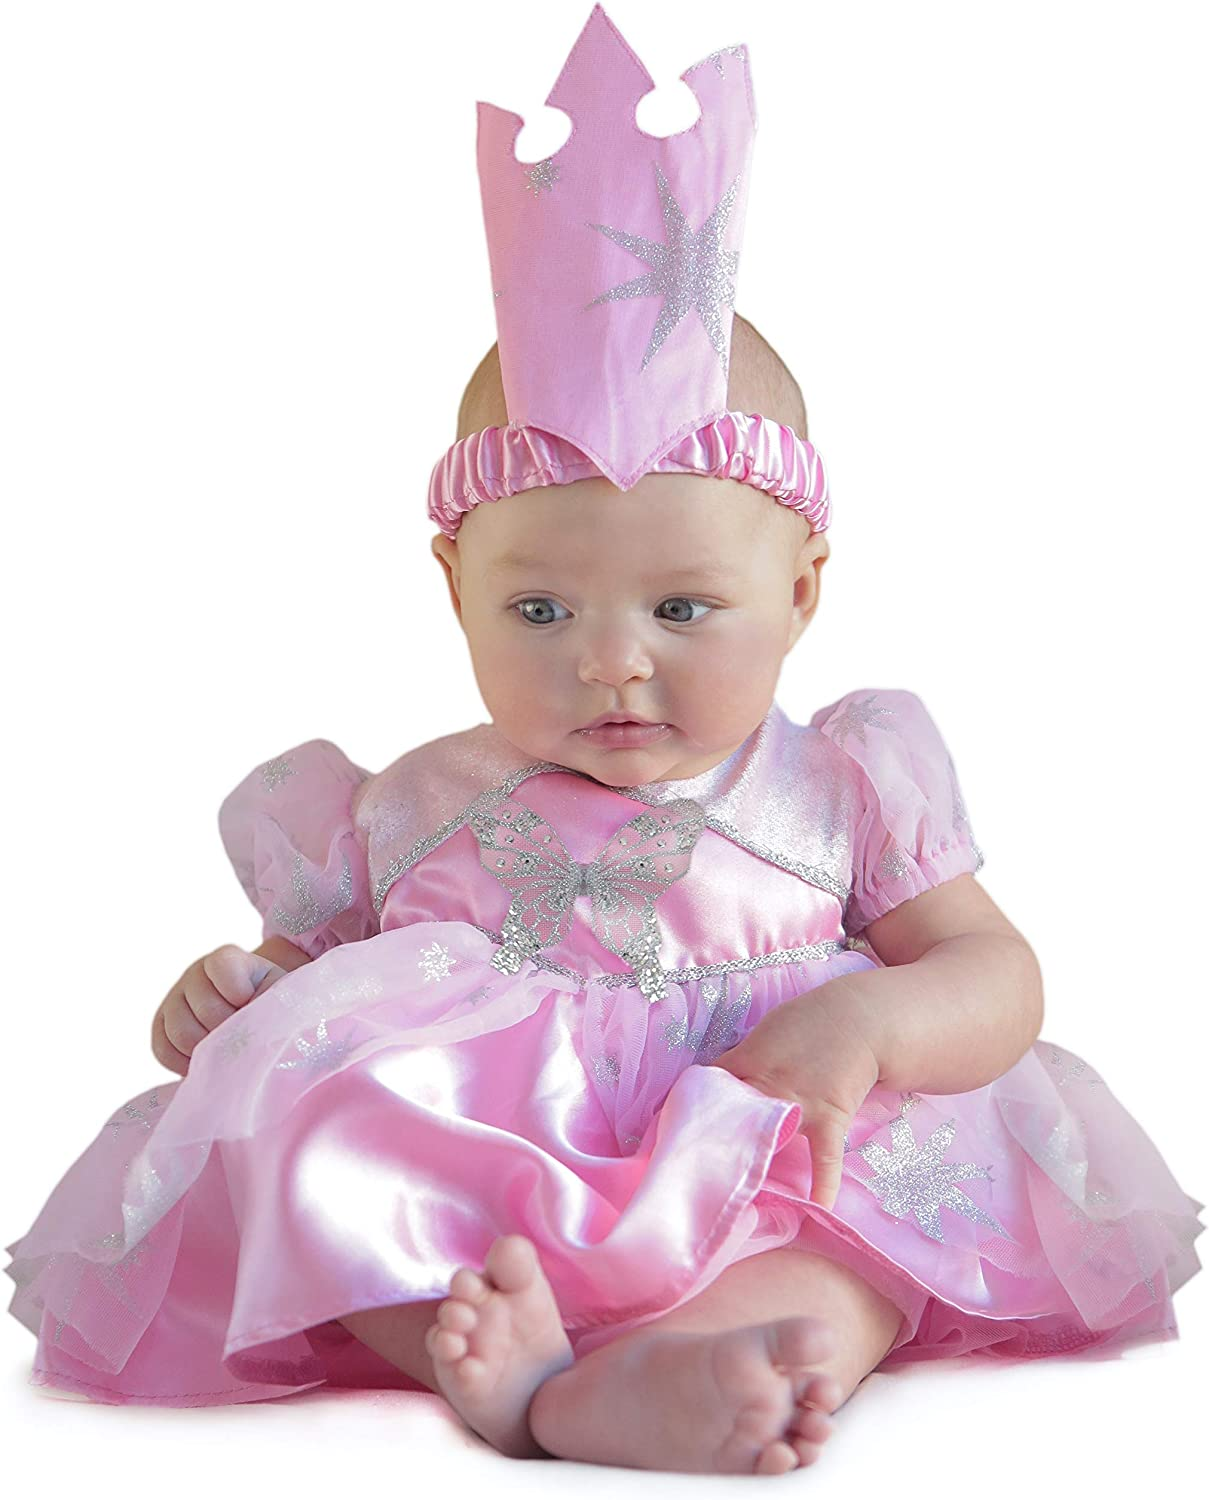 Wizard of Oz Baby Costume Baby Shower Gift Baby Gift Baby Girl Baby Halloween Glinda the Good Witch Baby Clothes Baby Girl Clothes